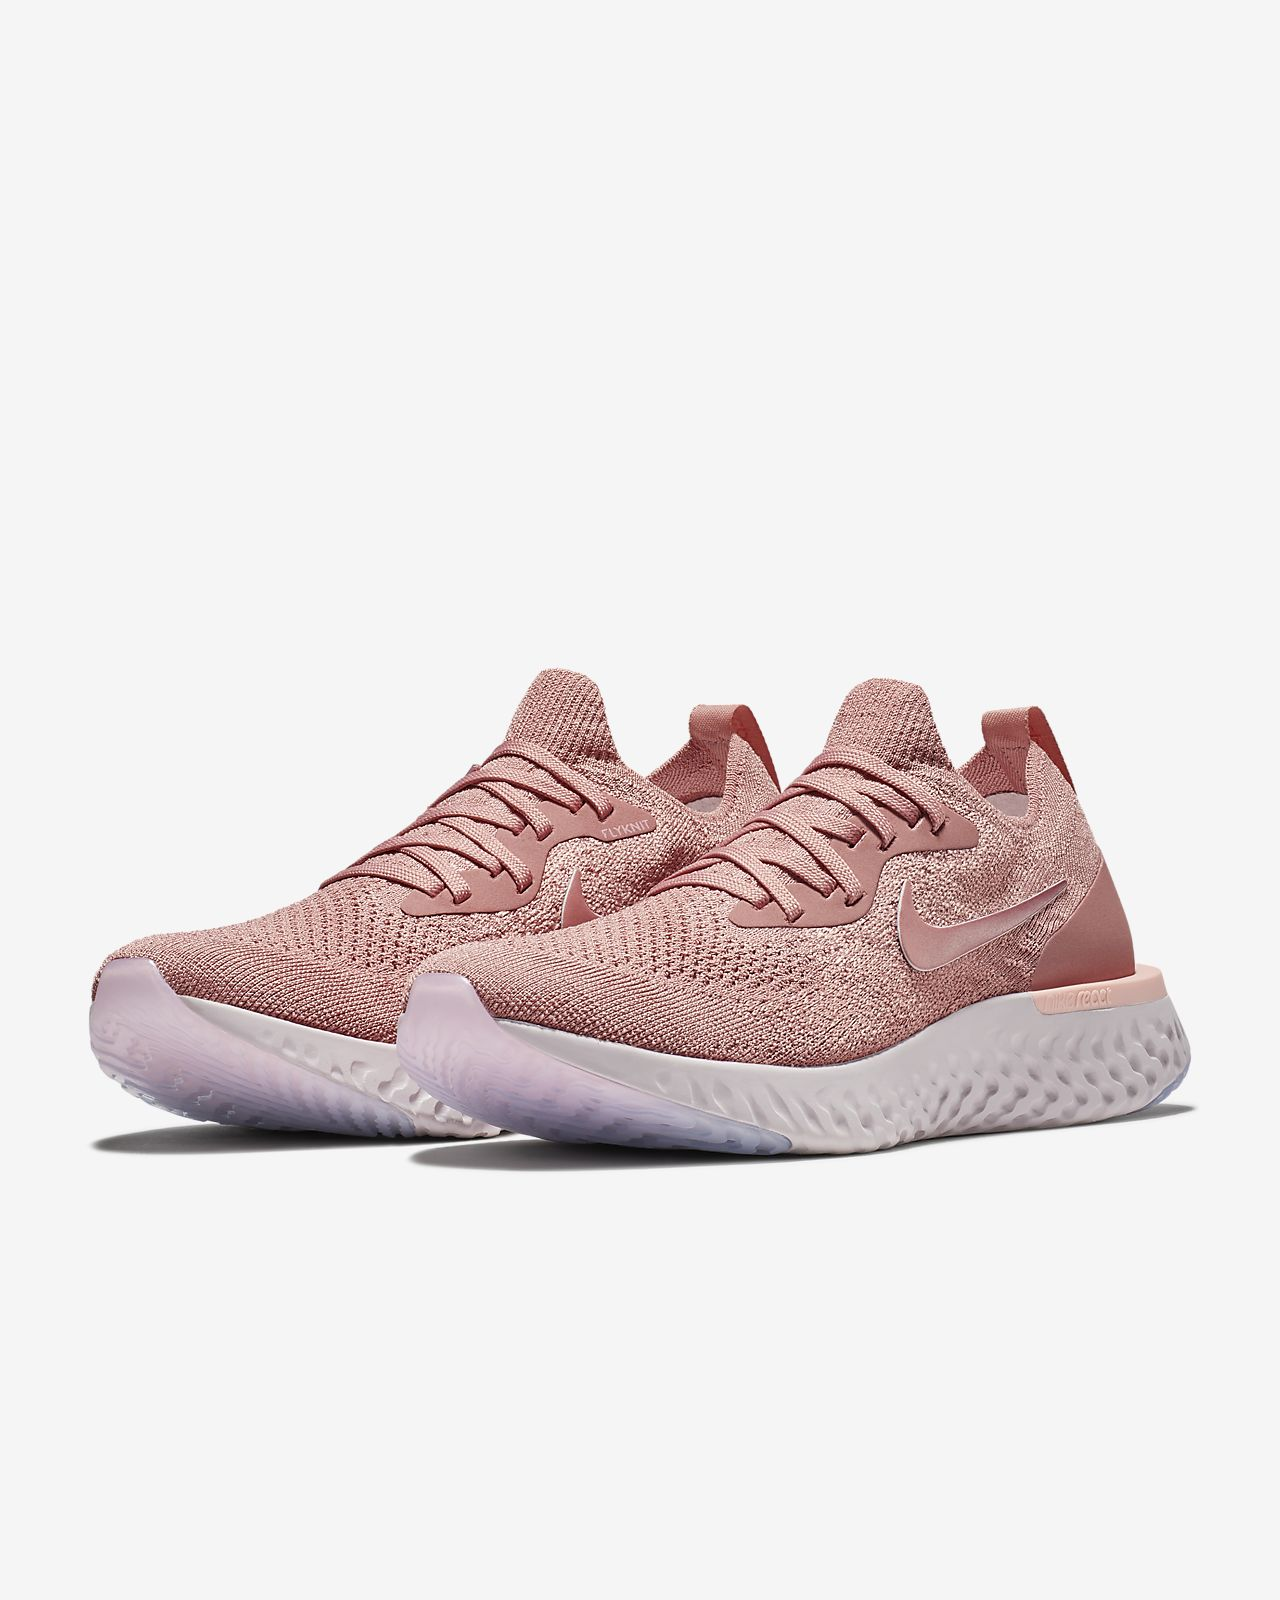 huge selection of 670c8 32dc2 ... Nike Epic React Flyknit 1 Women s Running Shoe